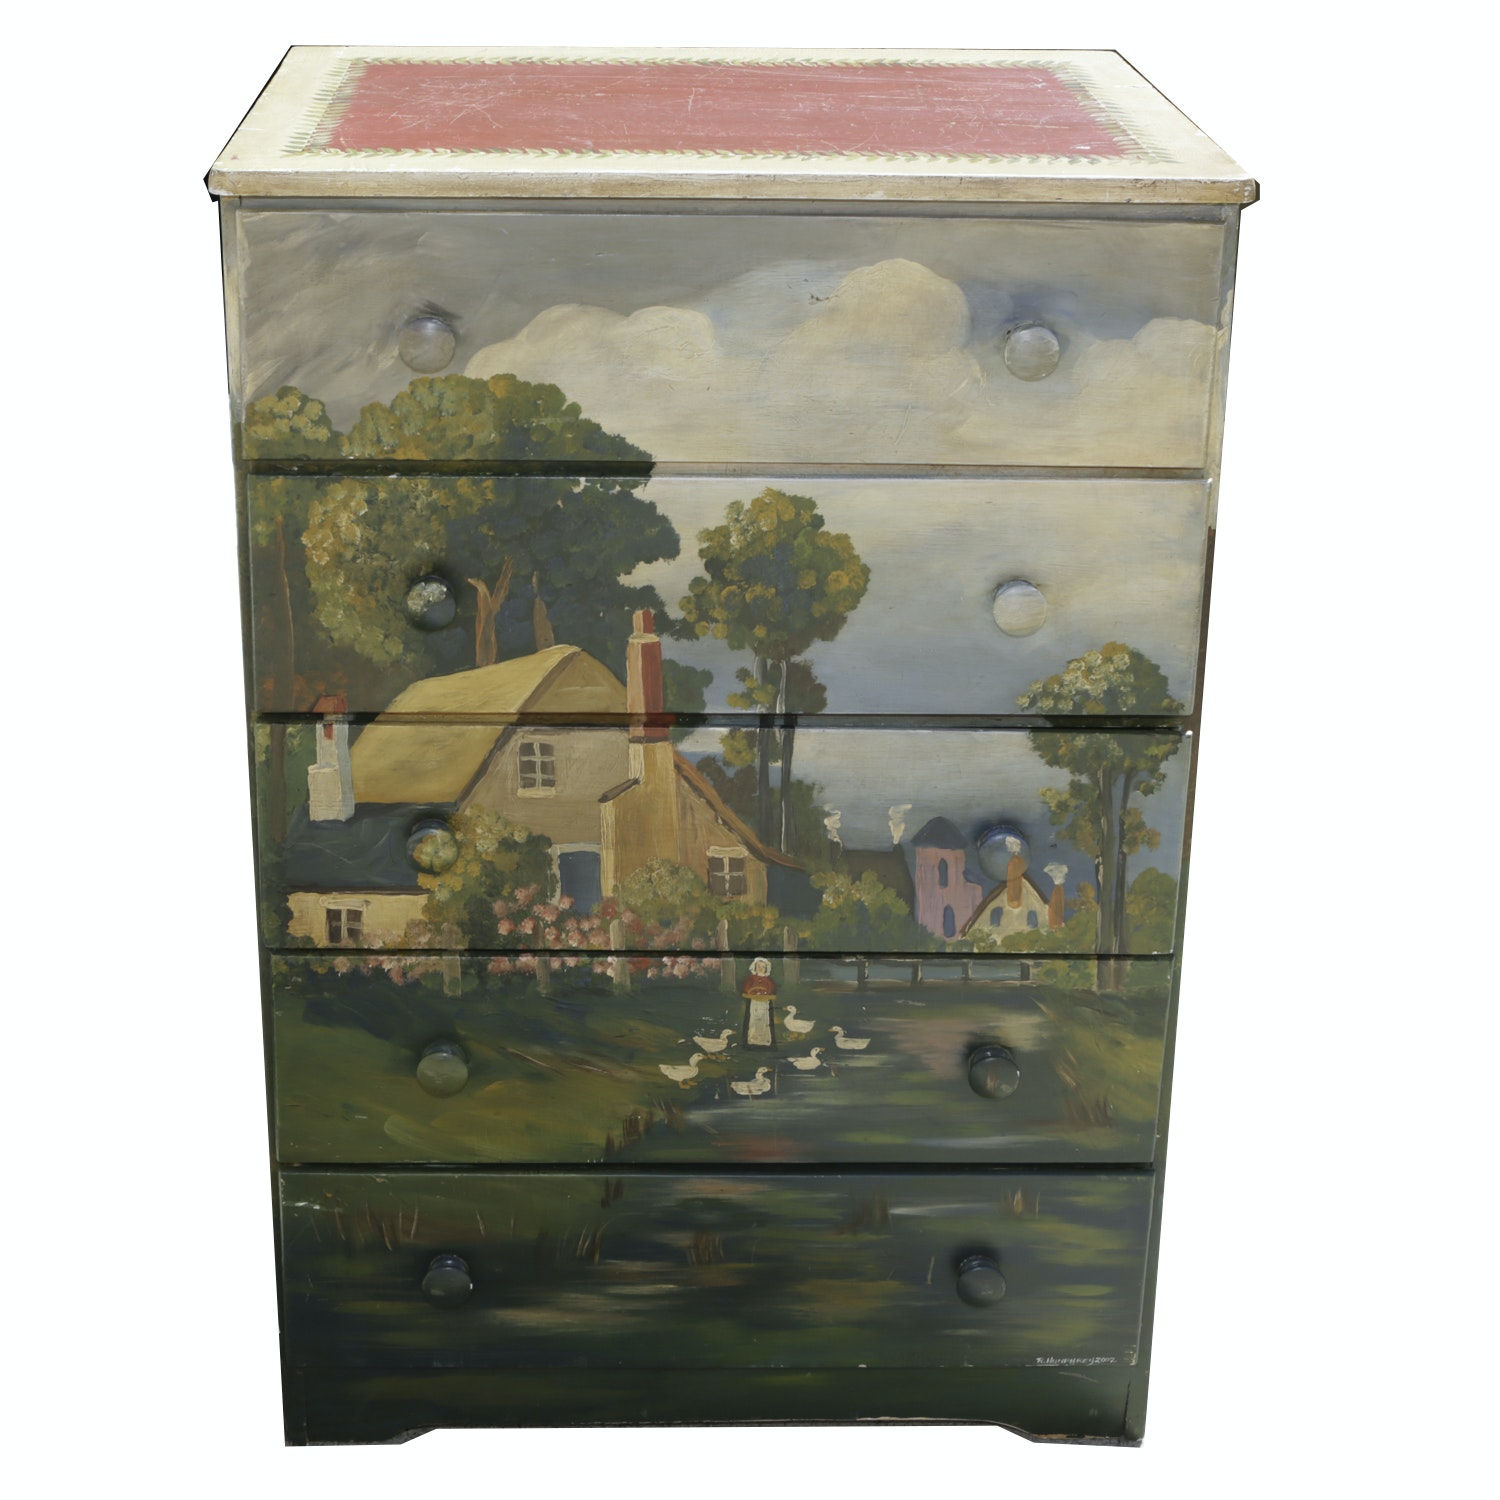 Hand Painted Chest of Drawers and Accessories by Rene Humphrey